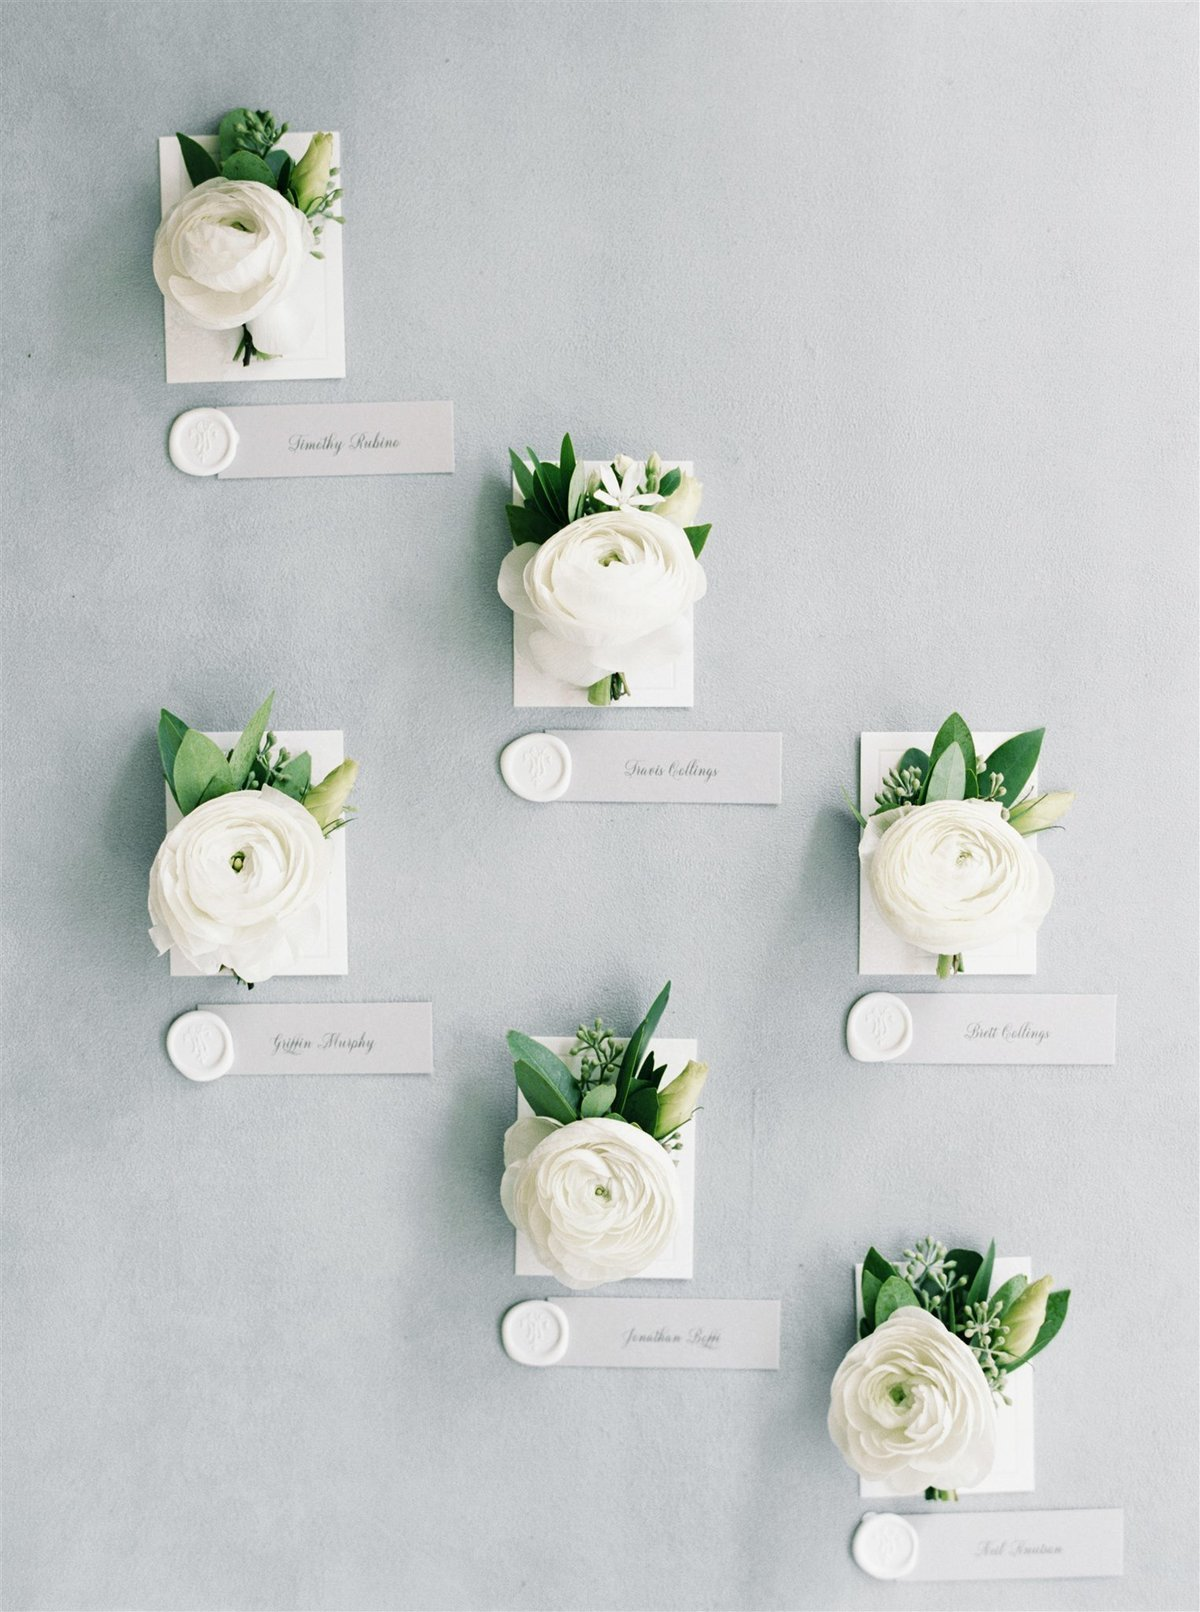 White ranunculus boutonnieres for groomsmenfor a Cape Cod Wedding by luxury Cape Cod wedding planner and designer Always Yours Events